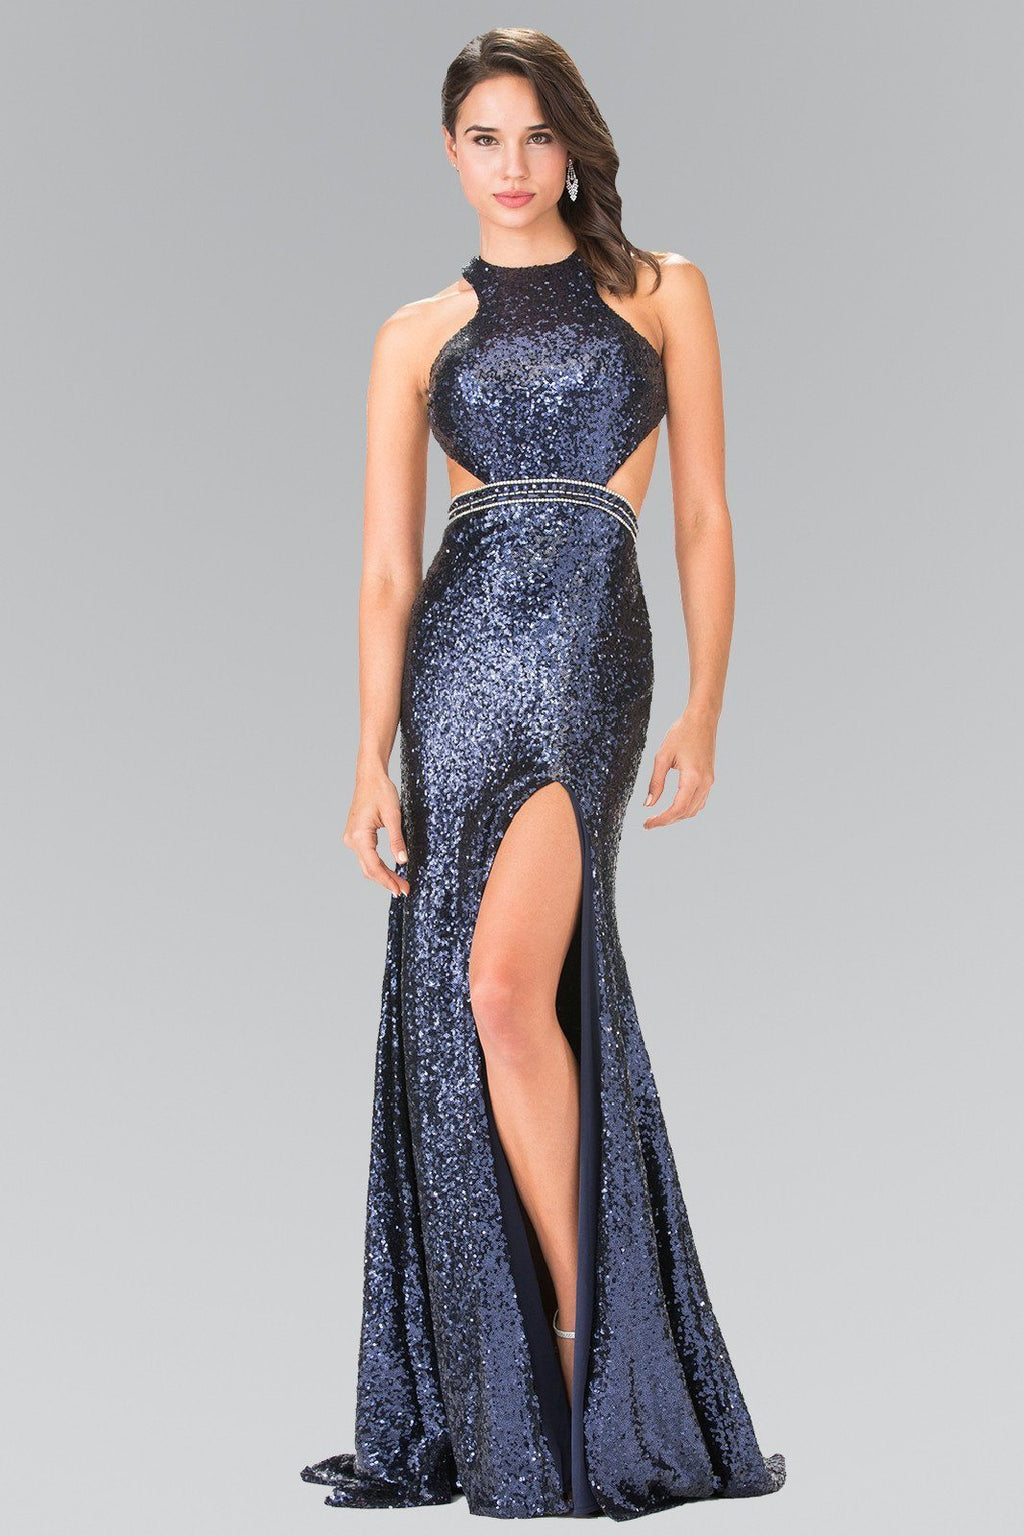 All over sequins formal dress with cut back and high slit gl2278 - Simply Fab Dress